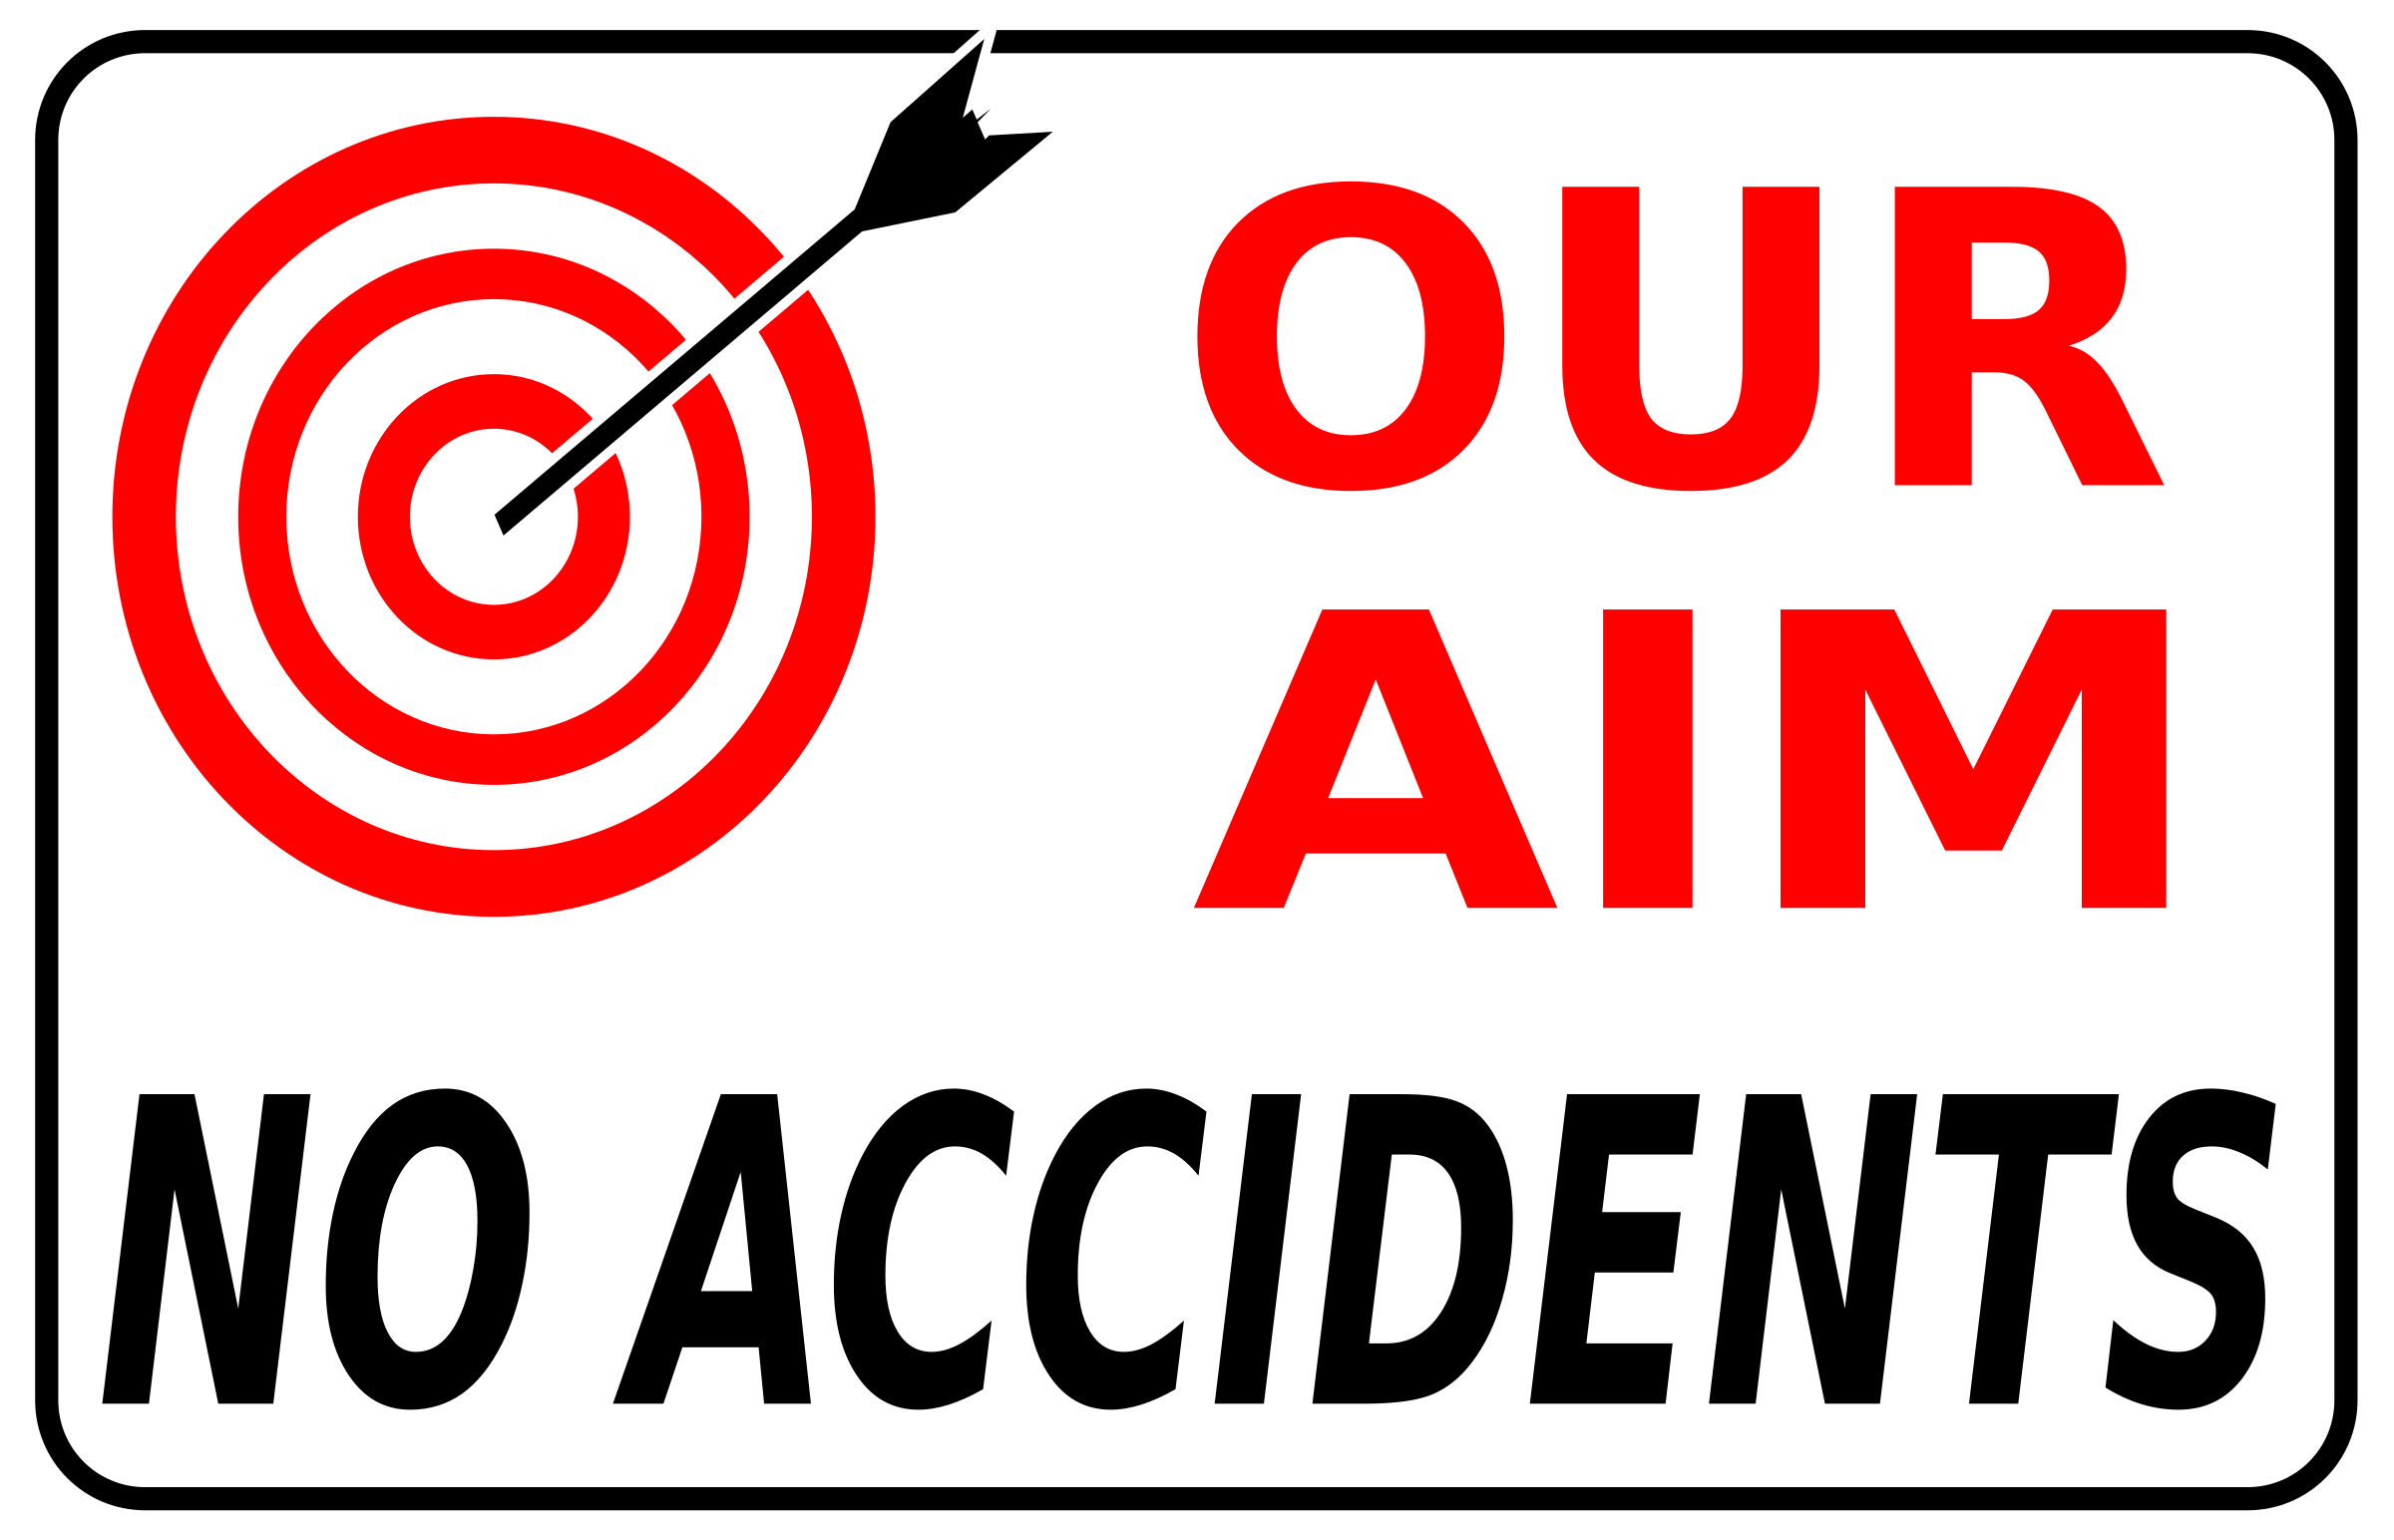 Clipart - Our aim no accidents (simple)